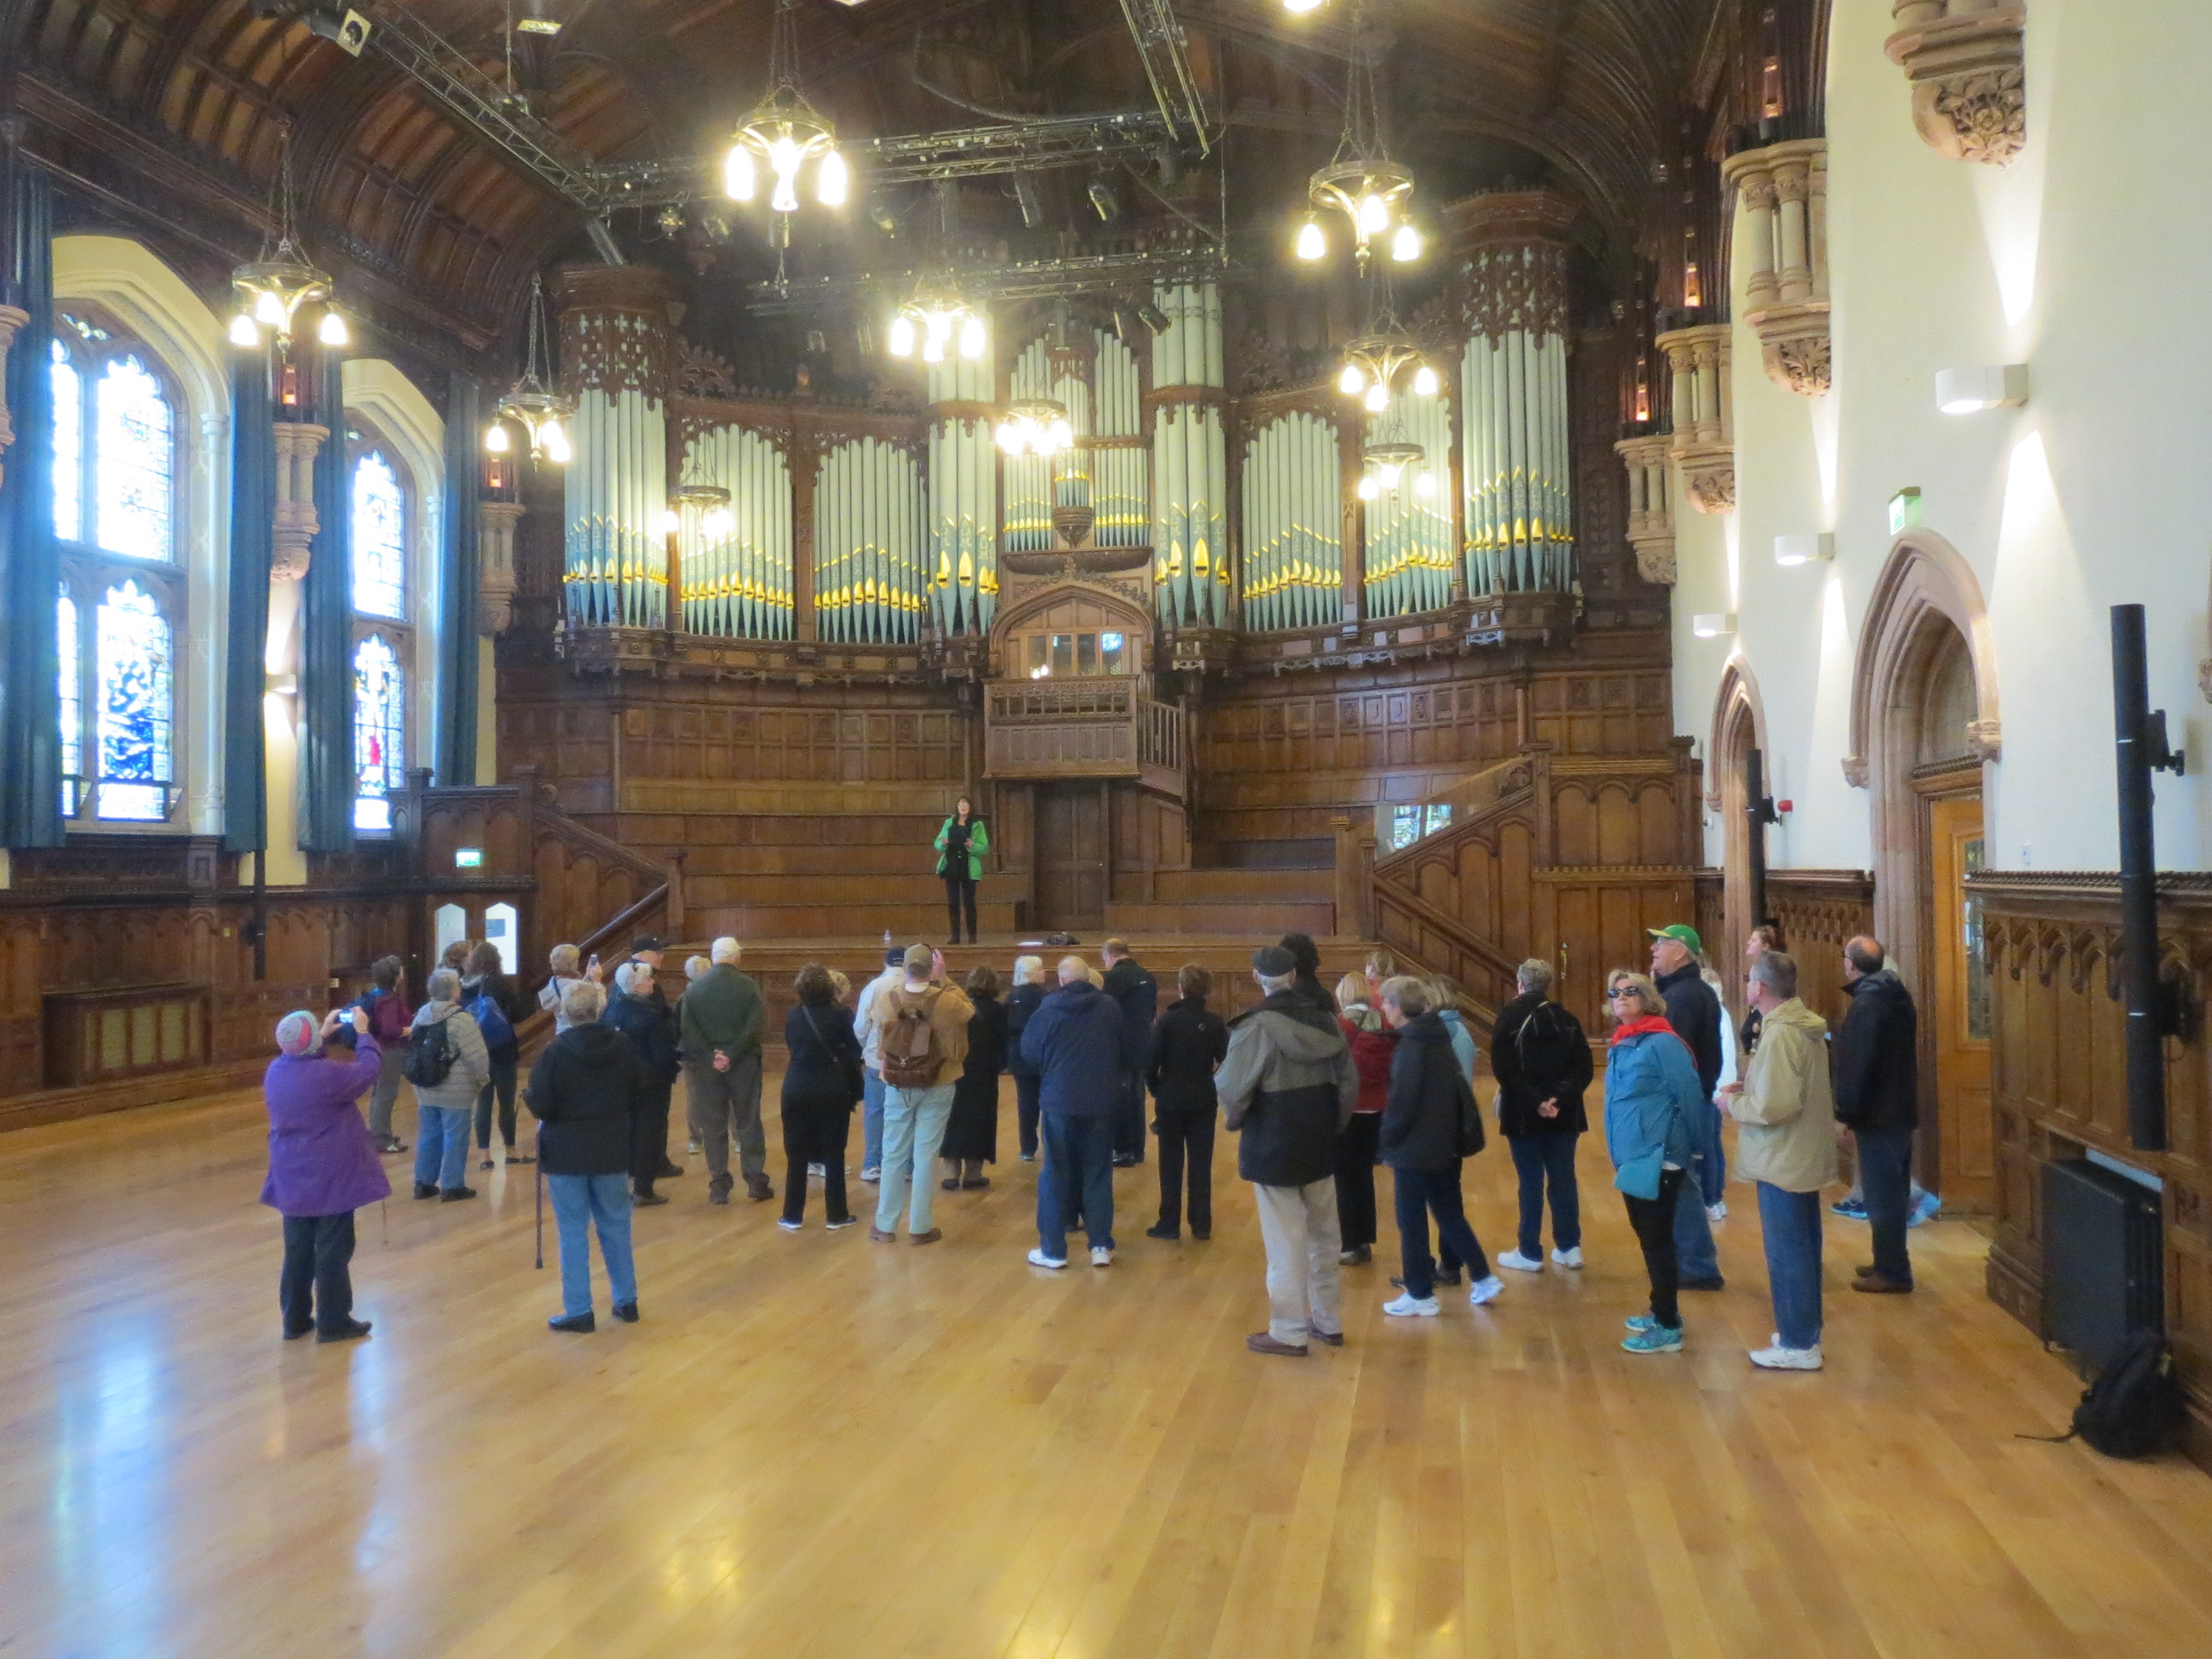 derry-guildhall-interior